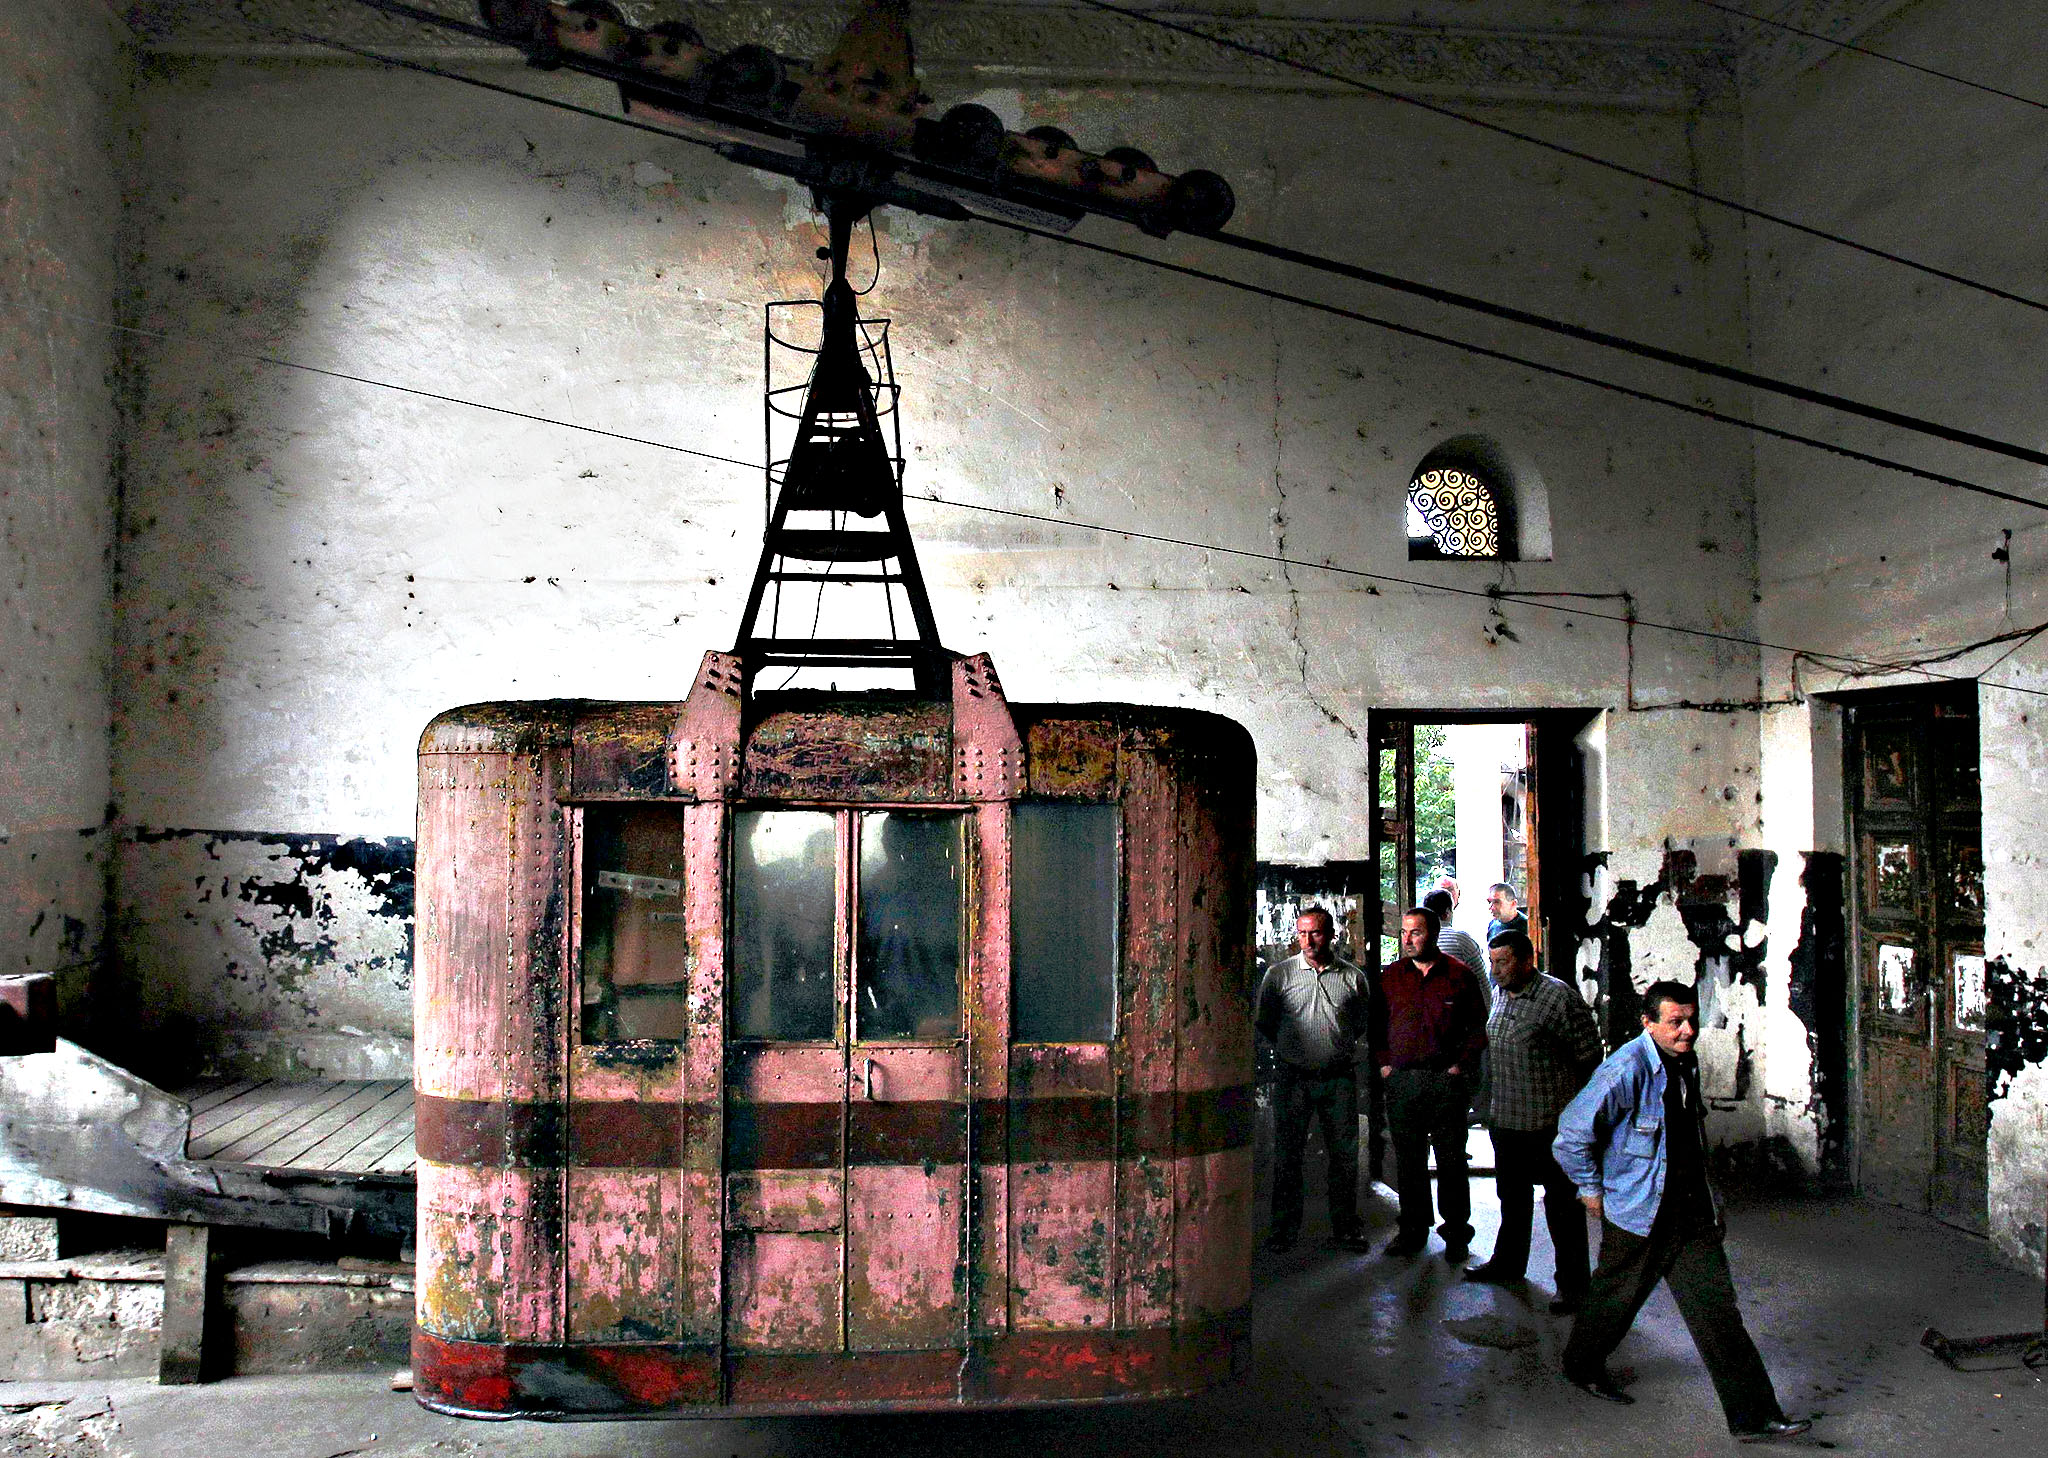 Commuters get out of a 60-year-old cable car in the town of Chiatura, some 220 km (136 miles) northwest of Tbilisi, September 12, 2013. Dating to the Soviet era, Chiatura's public cable cars were built to facilitate the manganese mining industry, which formed the bedrock of the town's economy. Sixty years later, 15 of Chiatura's 21 cable car routes are still running, covering a total length of over 6000 meters, and they are still the quickest and most convenient way of getting around, despite their advanced years.